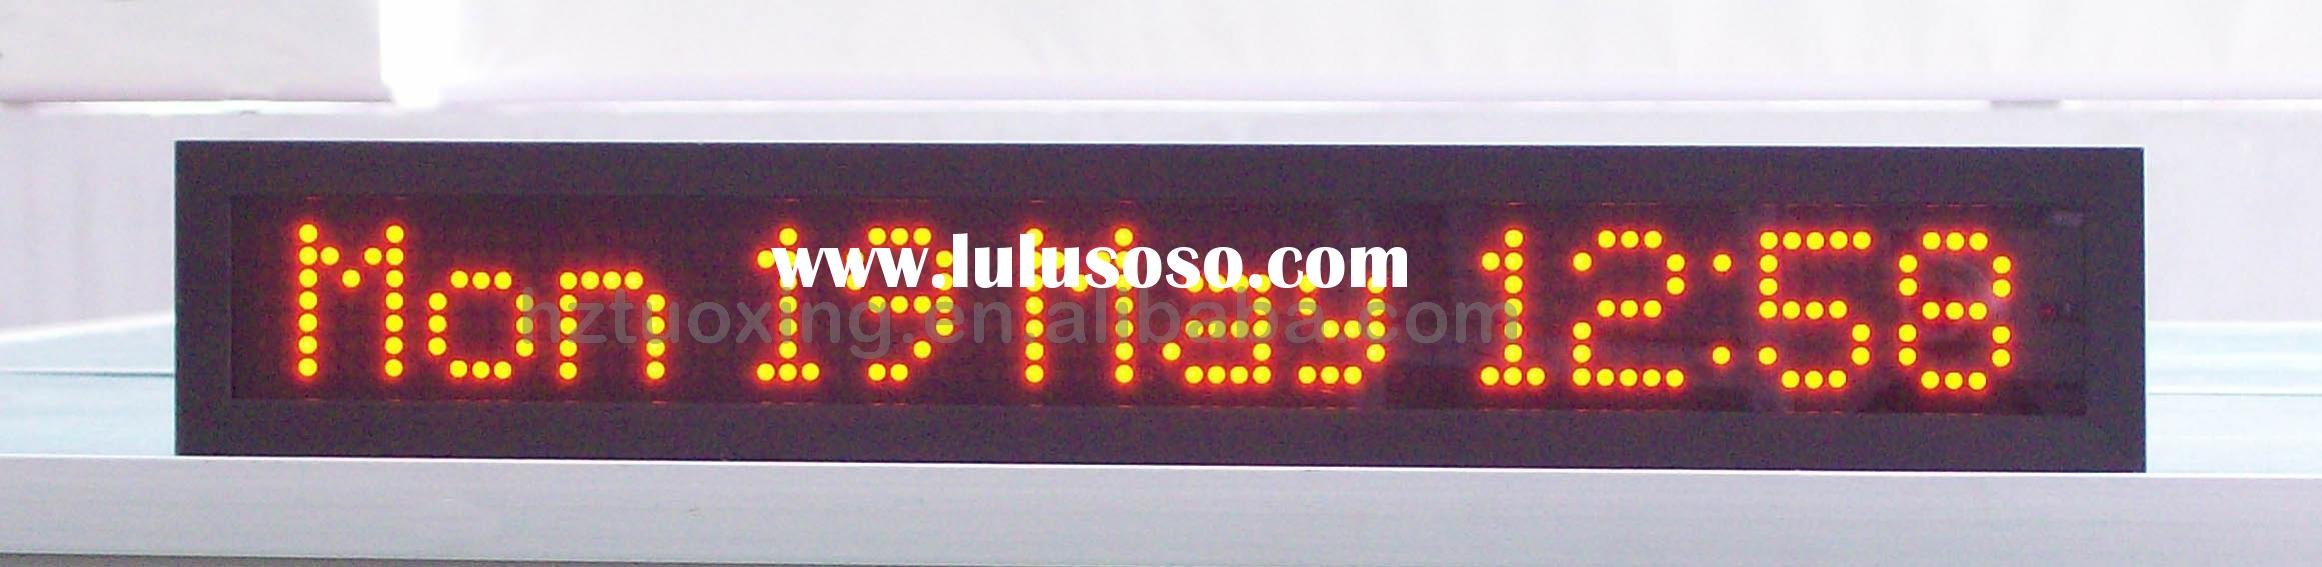 led text moving display, message moving display, single line led display, text scrolling display